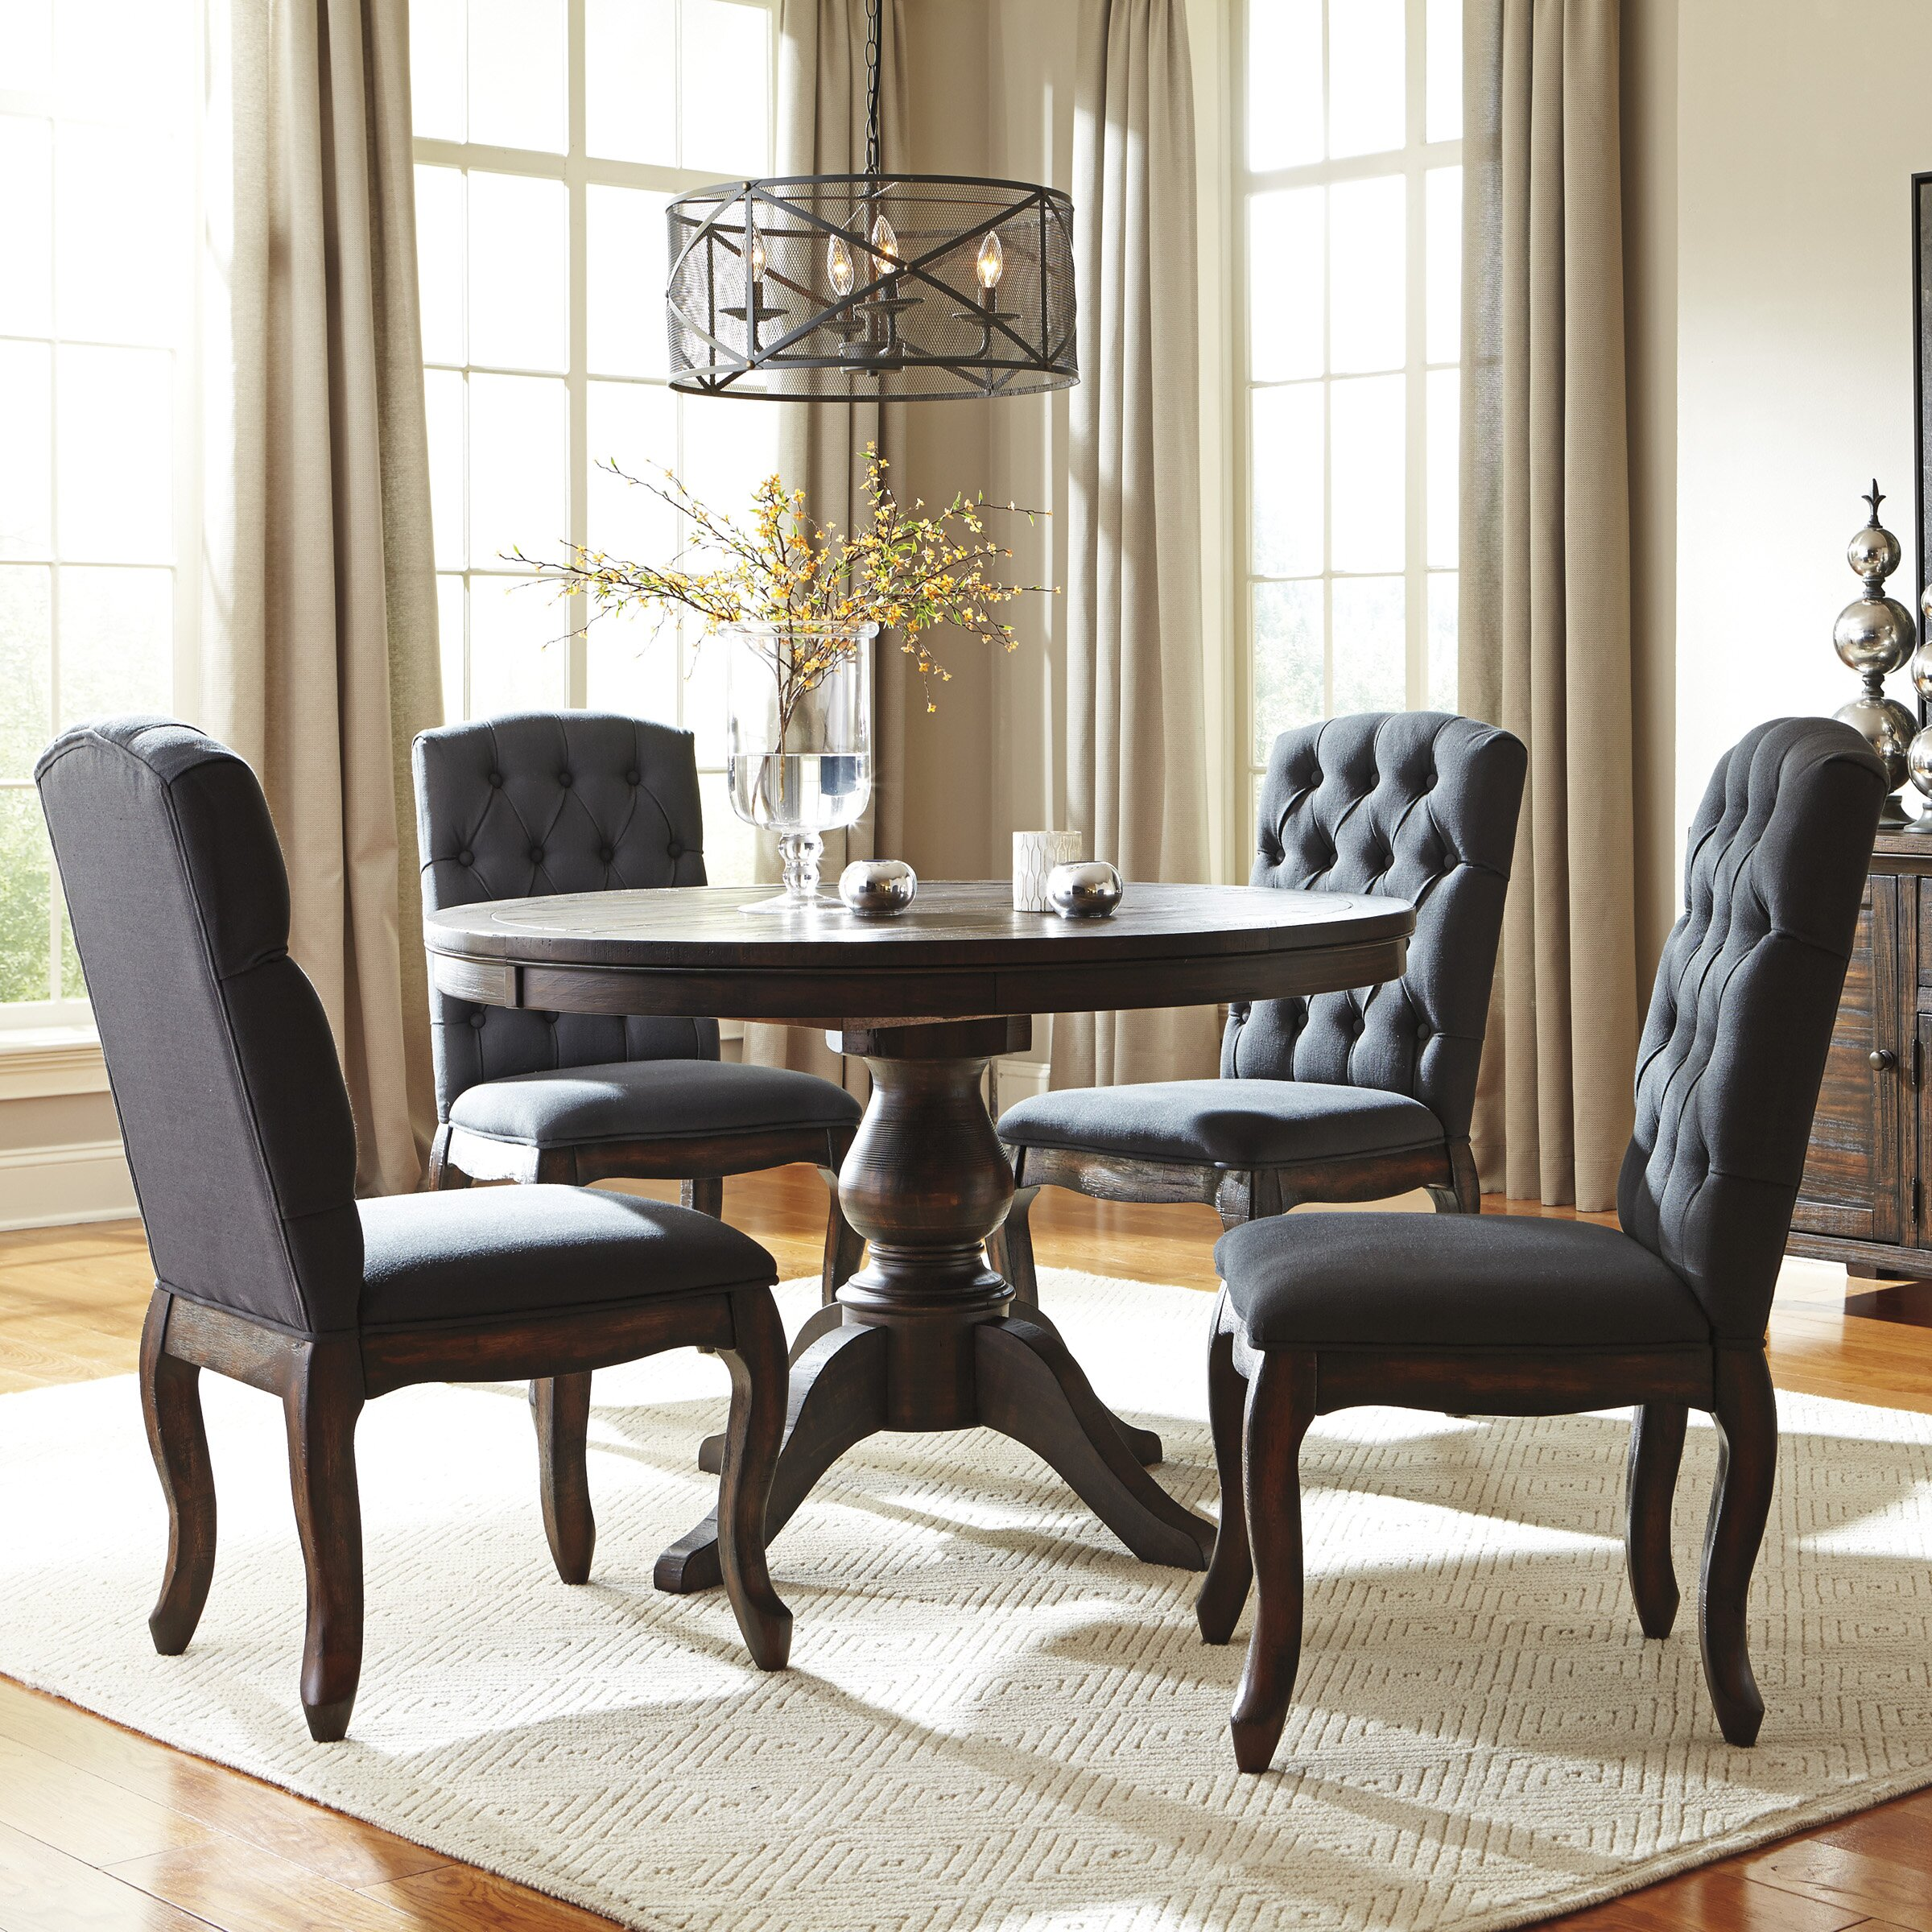 Dining Room Sets 5 Piece: Signature Design By Ashley 5 Piece Dining Set & Reviews